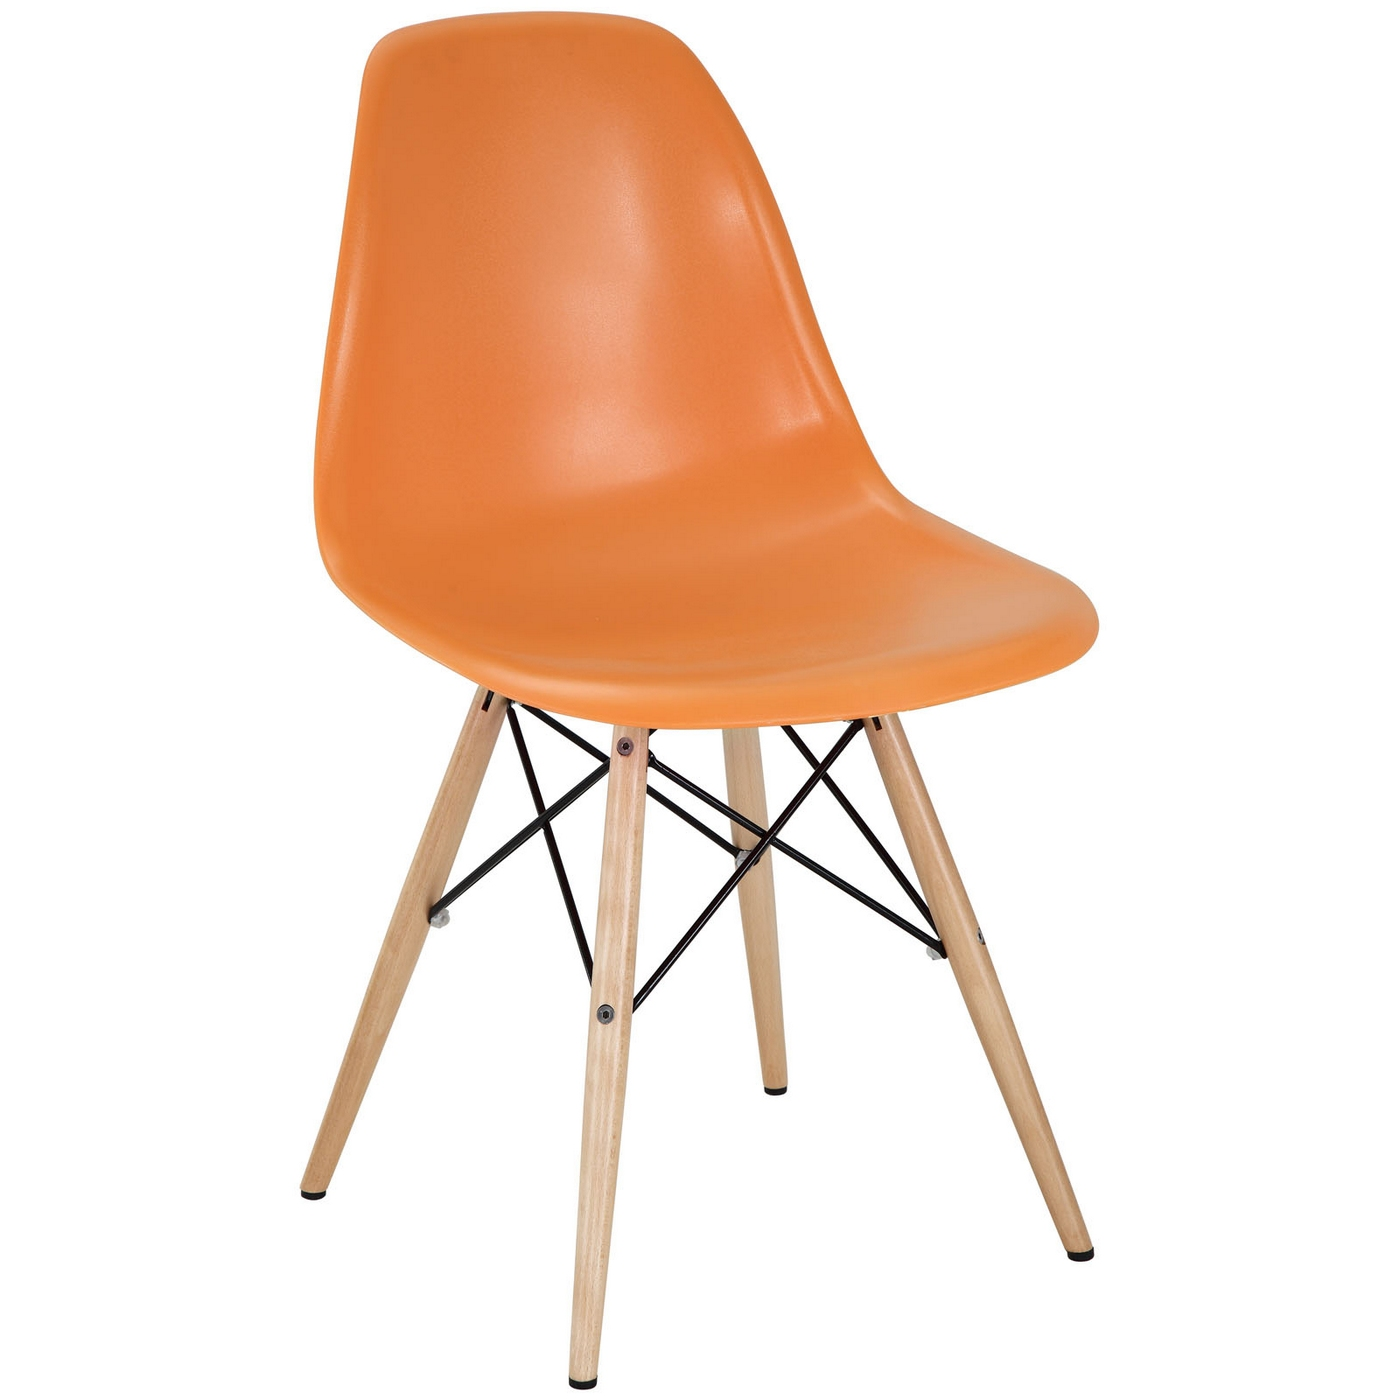 plastic chairs with stainless steel legs childrens wooden table and pyramid modern side chair wood